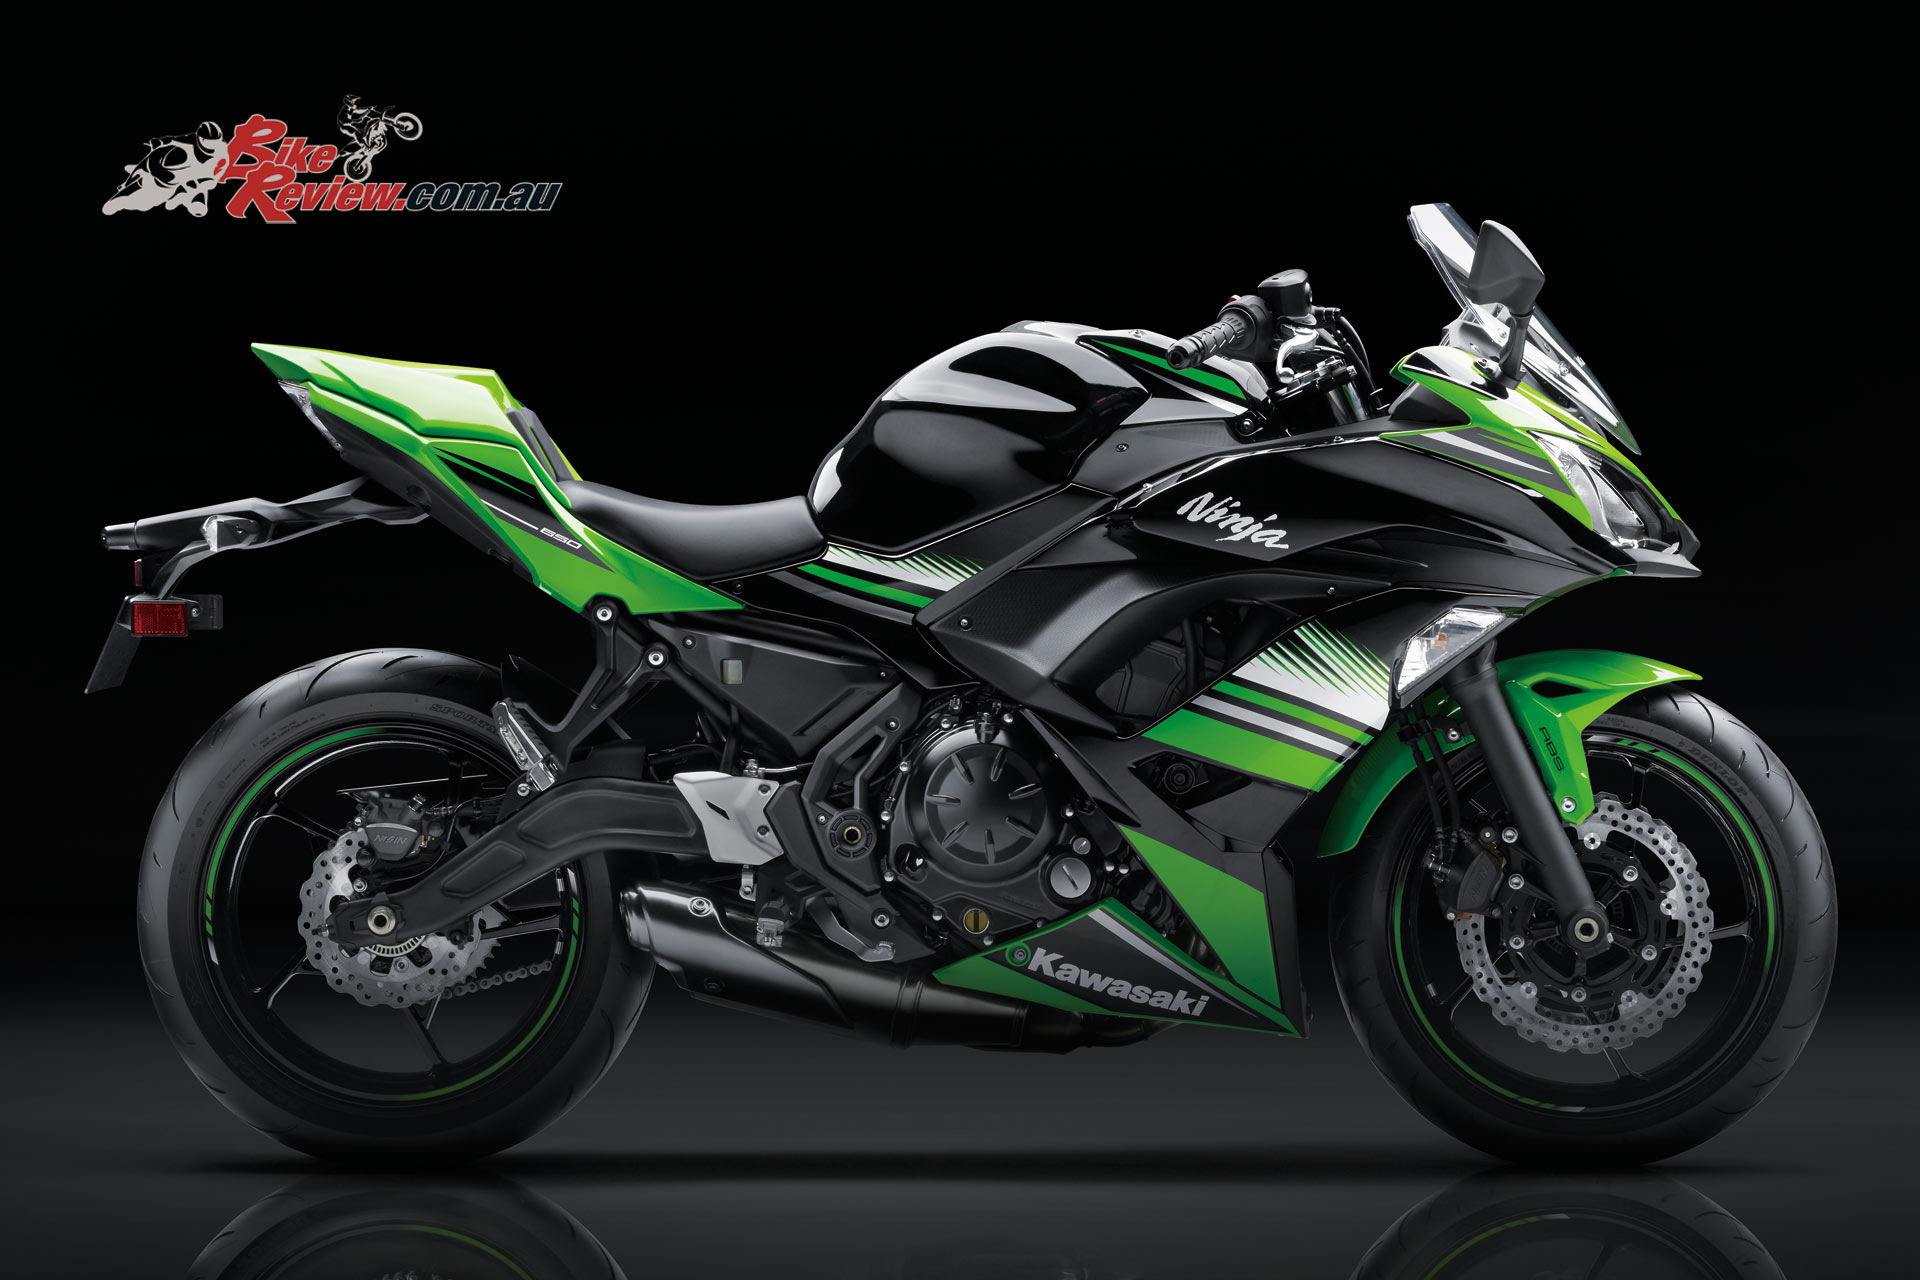 kawasaki 39 s 2017 ninja 650 650l available now bike review. Black Bedroom Furniture Sets. Home Design Ideas